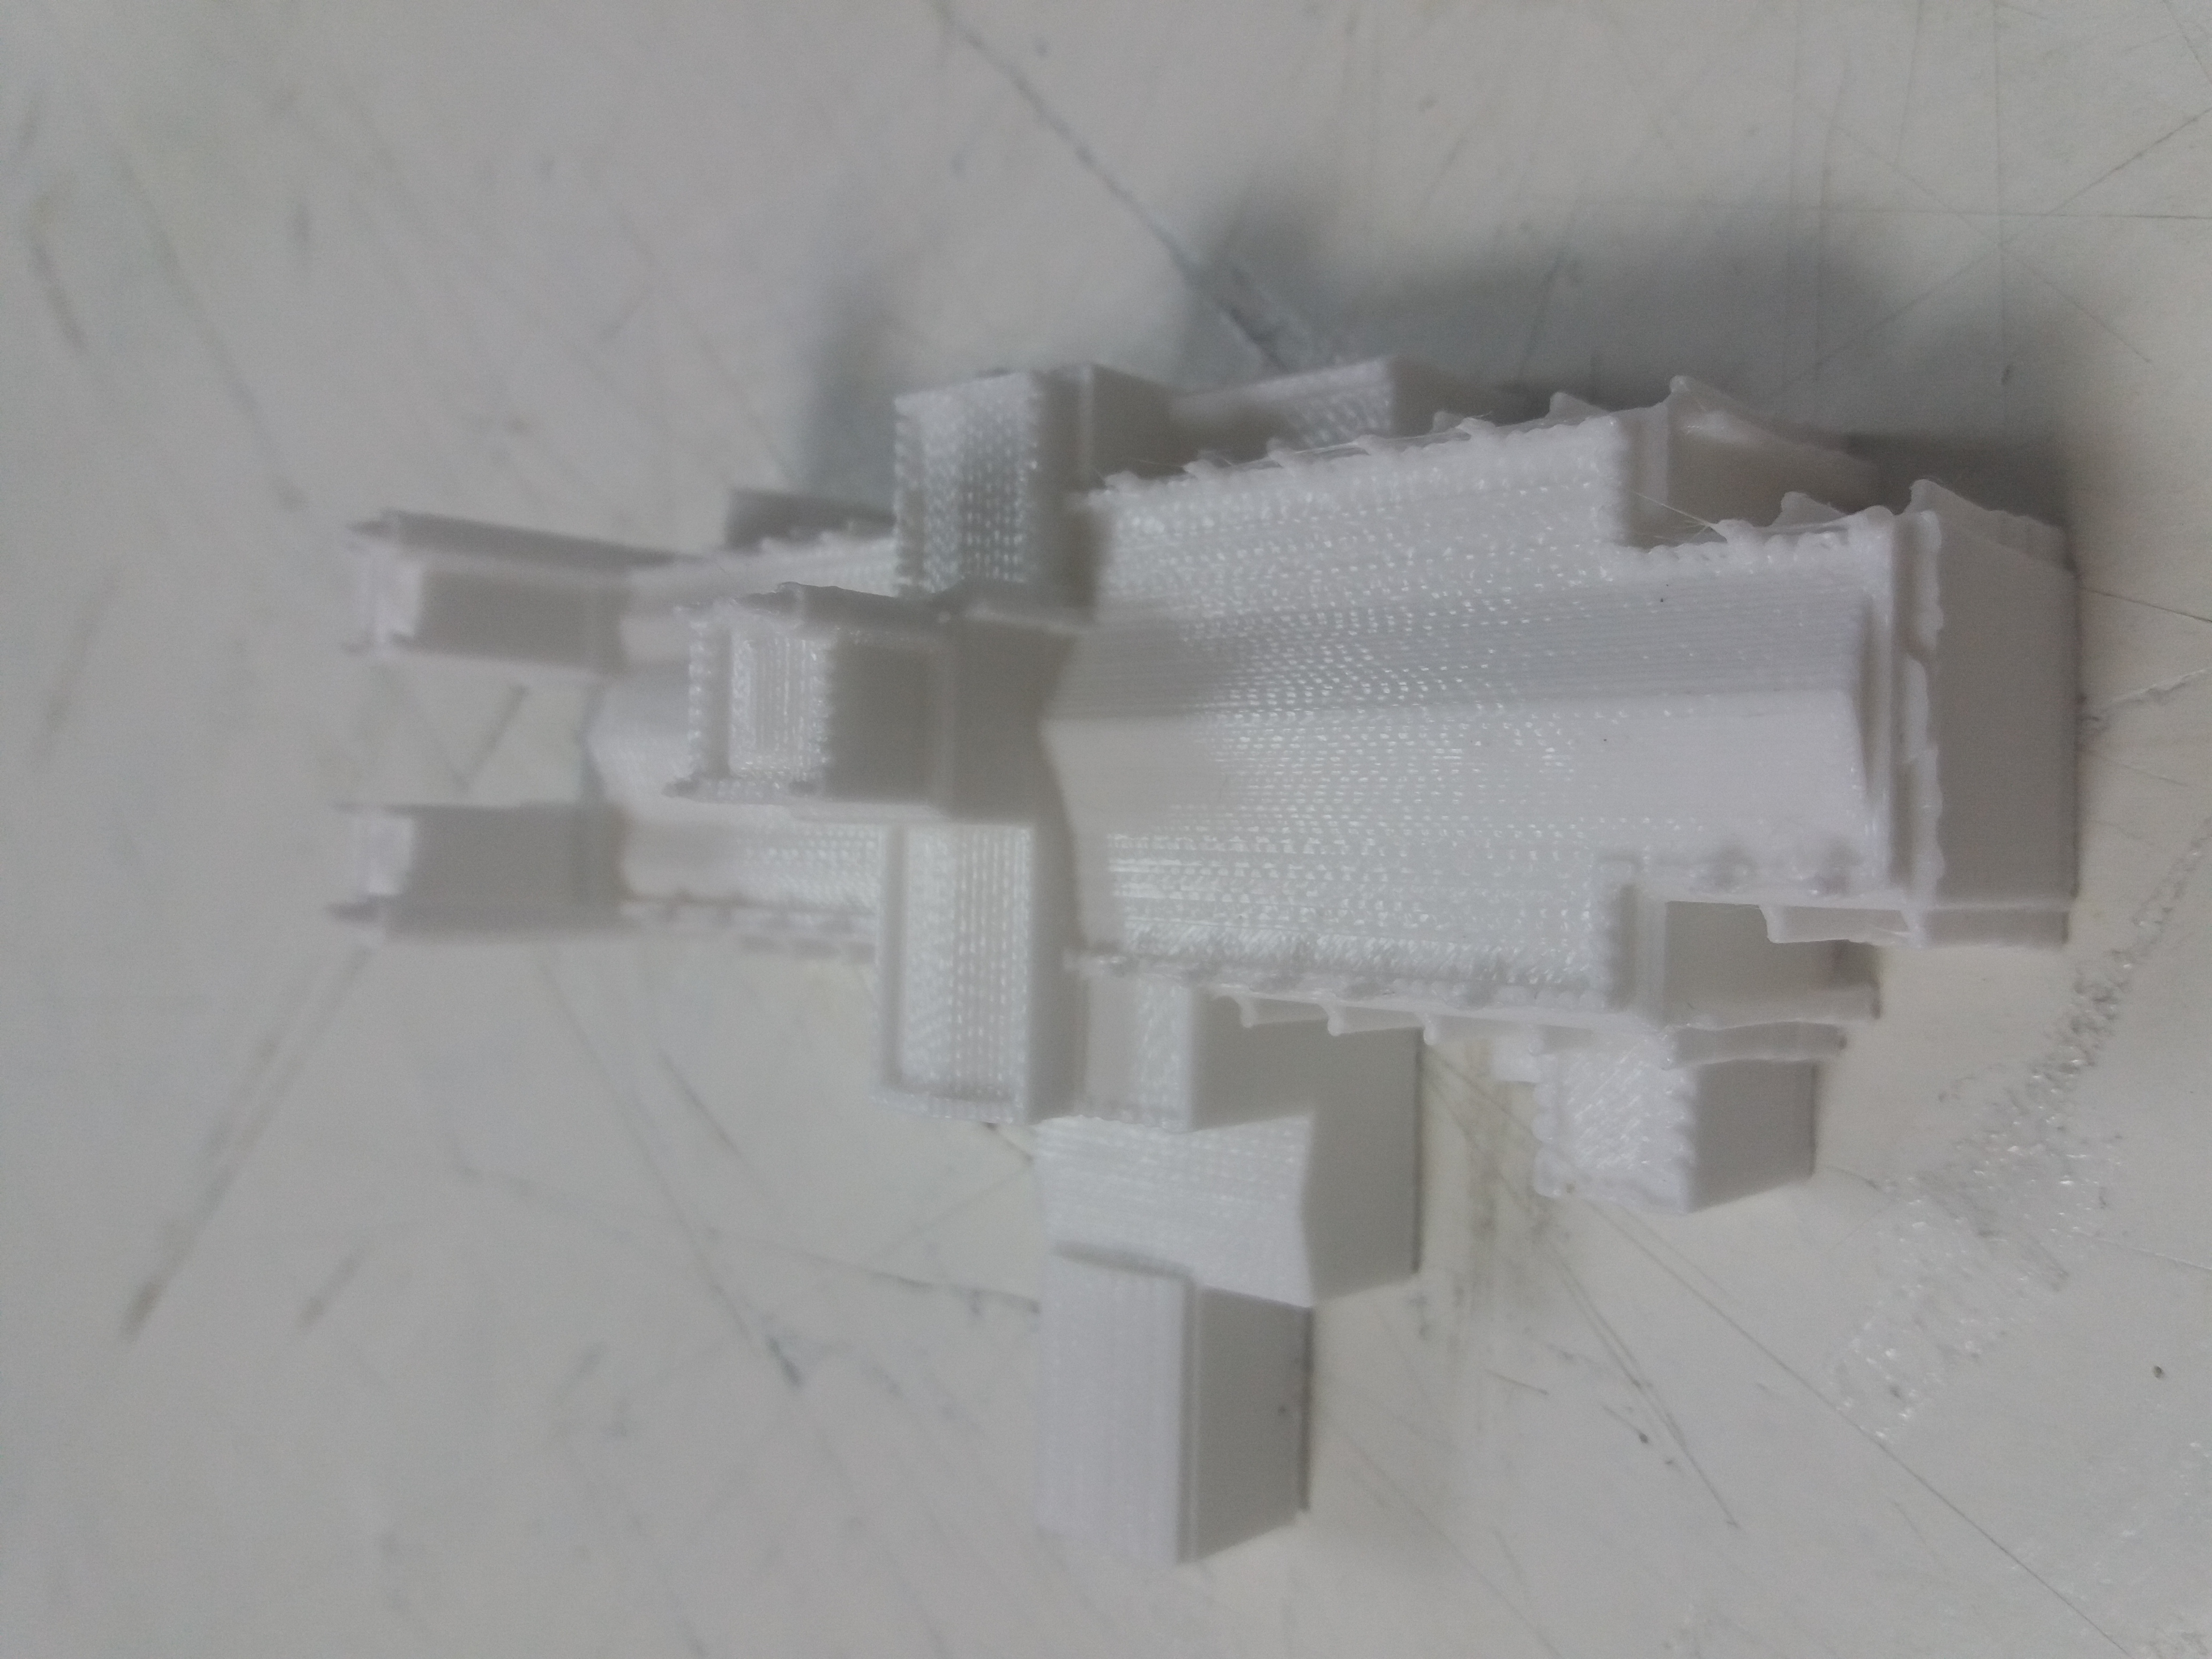 20190515_110340.jpg Download free OBJ file Bristol Cathedral • 3D printer template, jpmansilla23